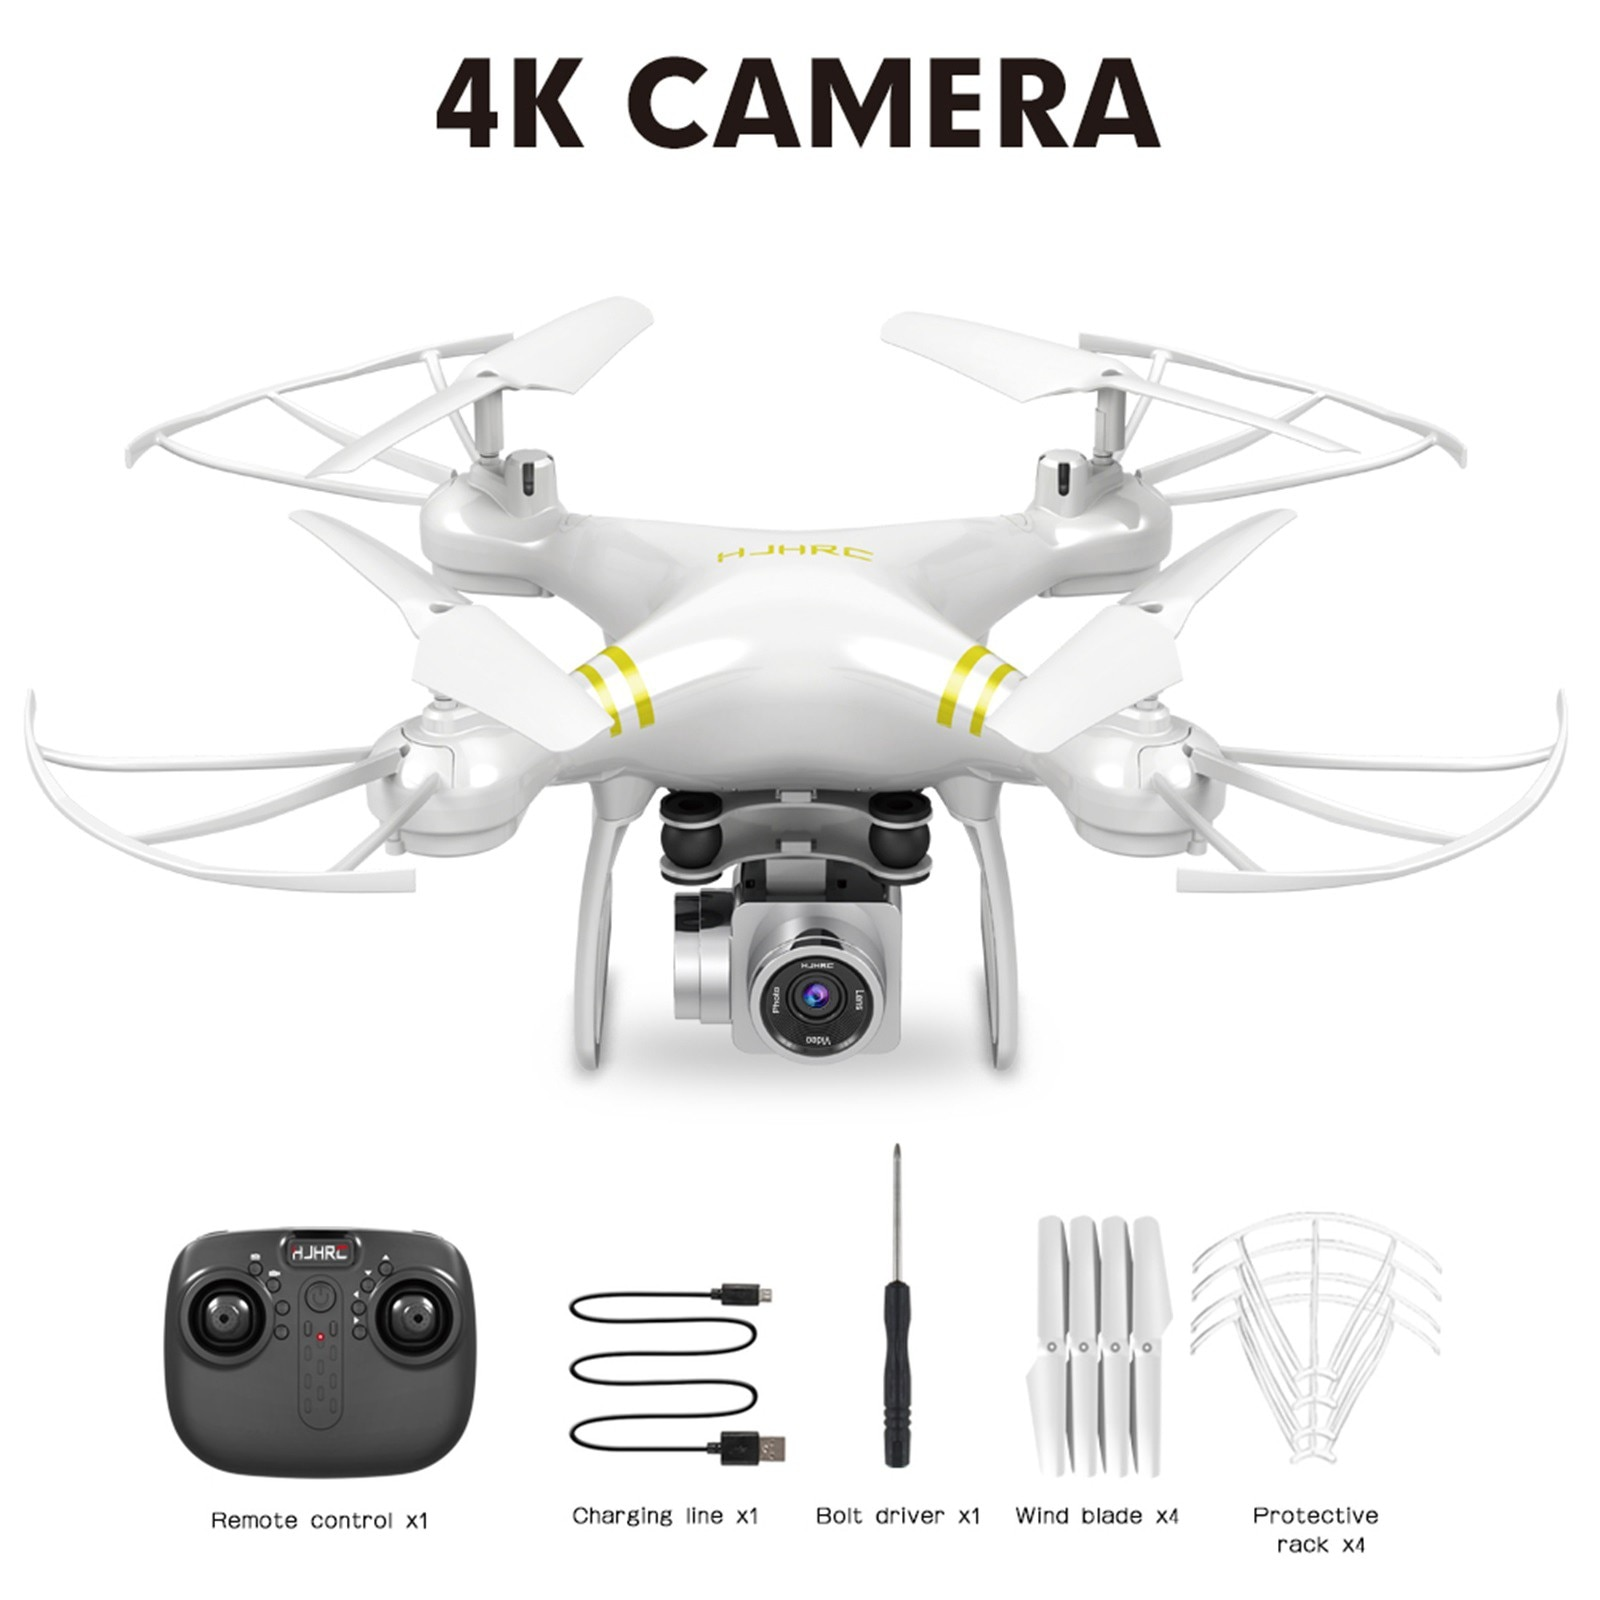 H60267bcaa8a64fd3ac4d619e6089e0d01 - Hjhrc Four-axis Aerial Photography Aircraft Drone With Camera Hd 4k Wifi Fpv Foldable Drone Height Holding Headless Quadcopter